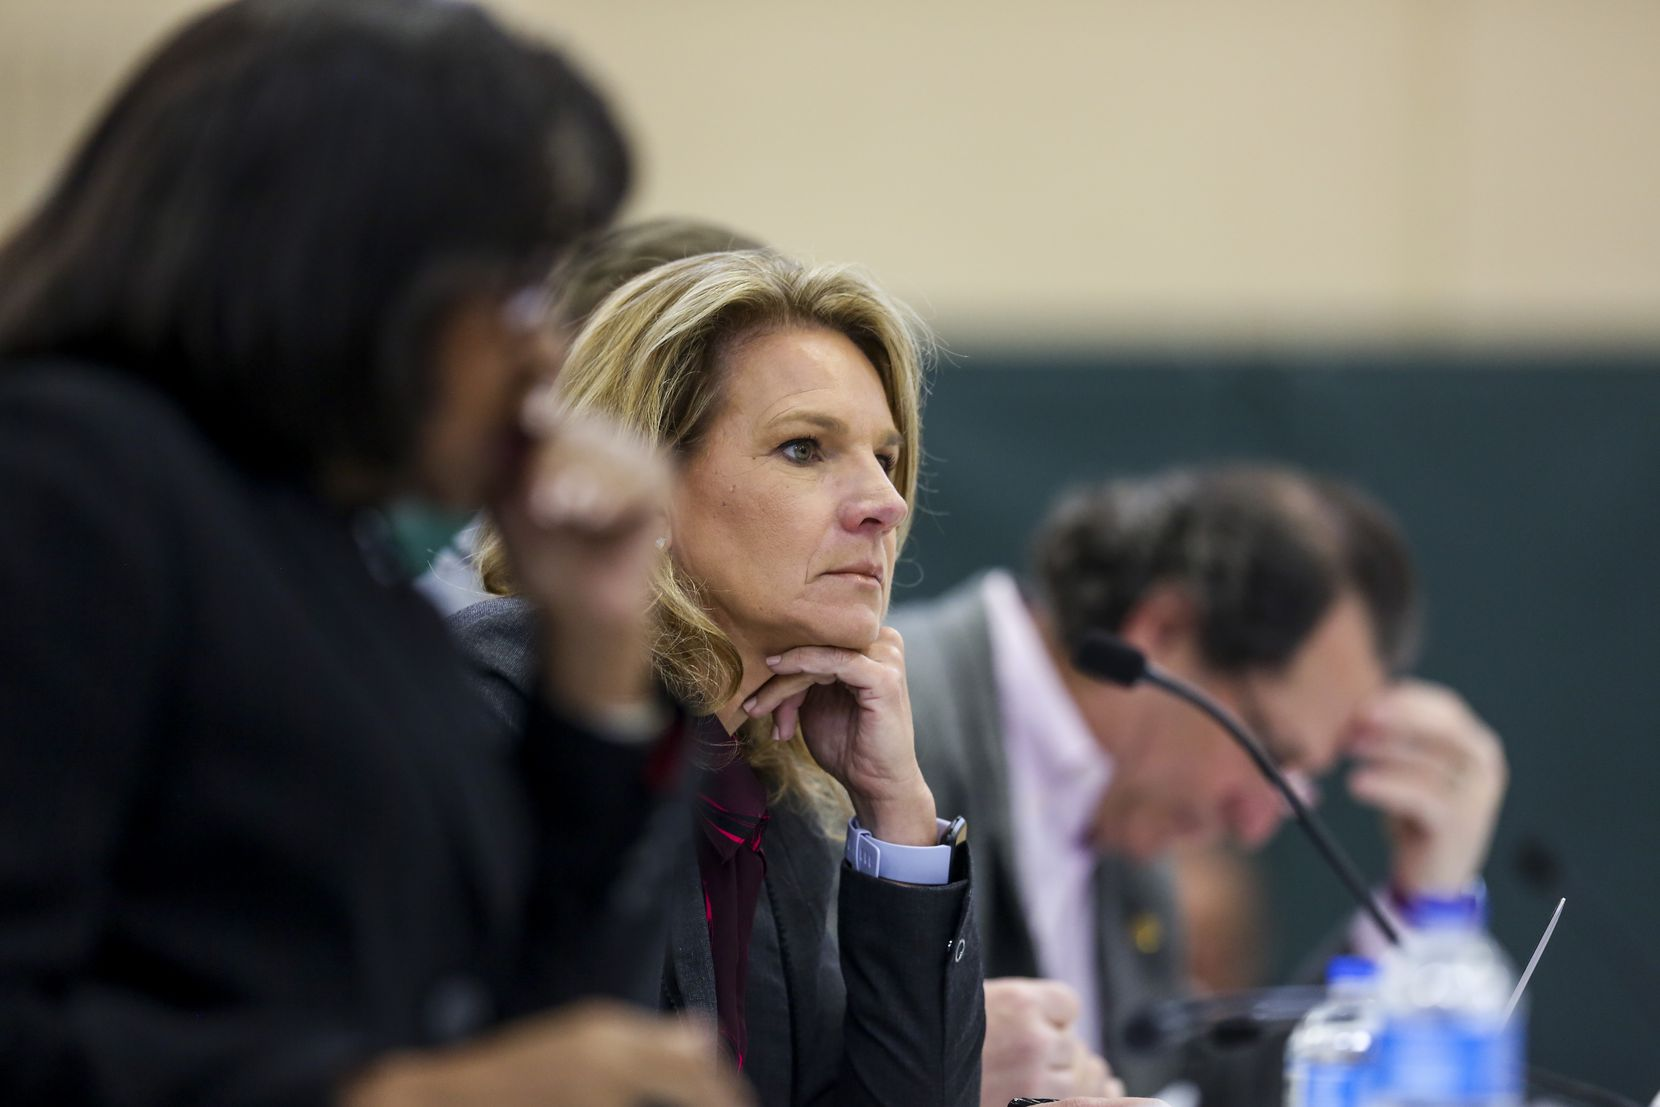 Dallas City Council member Jennifer Staubach Gates listens during a Dallas City Council meeting at Park In the Woods Recreation Center in Dallas on Wednesday, Feb. 13, 2019.